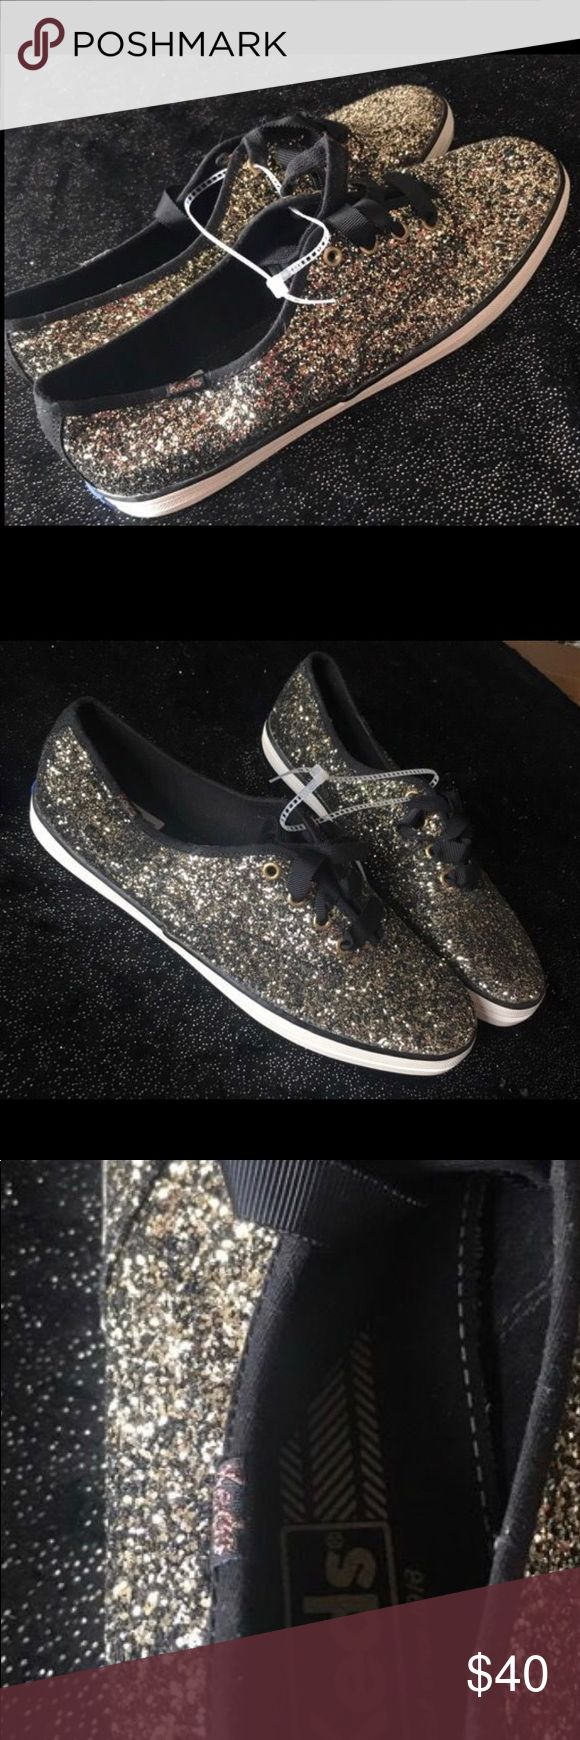 ❗️Flash Sale❗️NWT Sparkle KEDS Shoes 9.5 NWT Sparkle KEDS Shoes 9.5 Paid $70 So beautiful Color: black & Gold Keds Shoes Sneakers